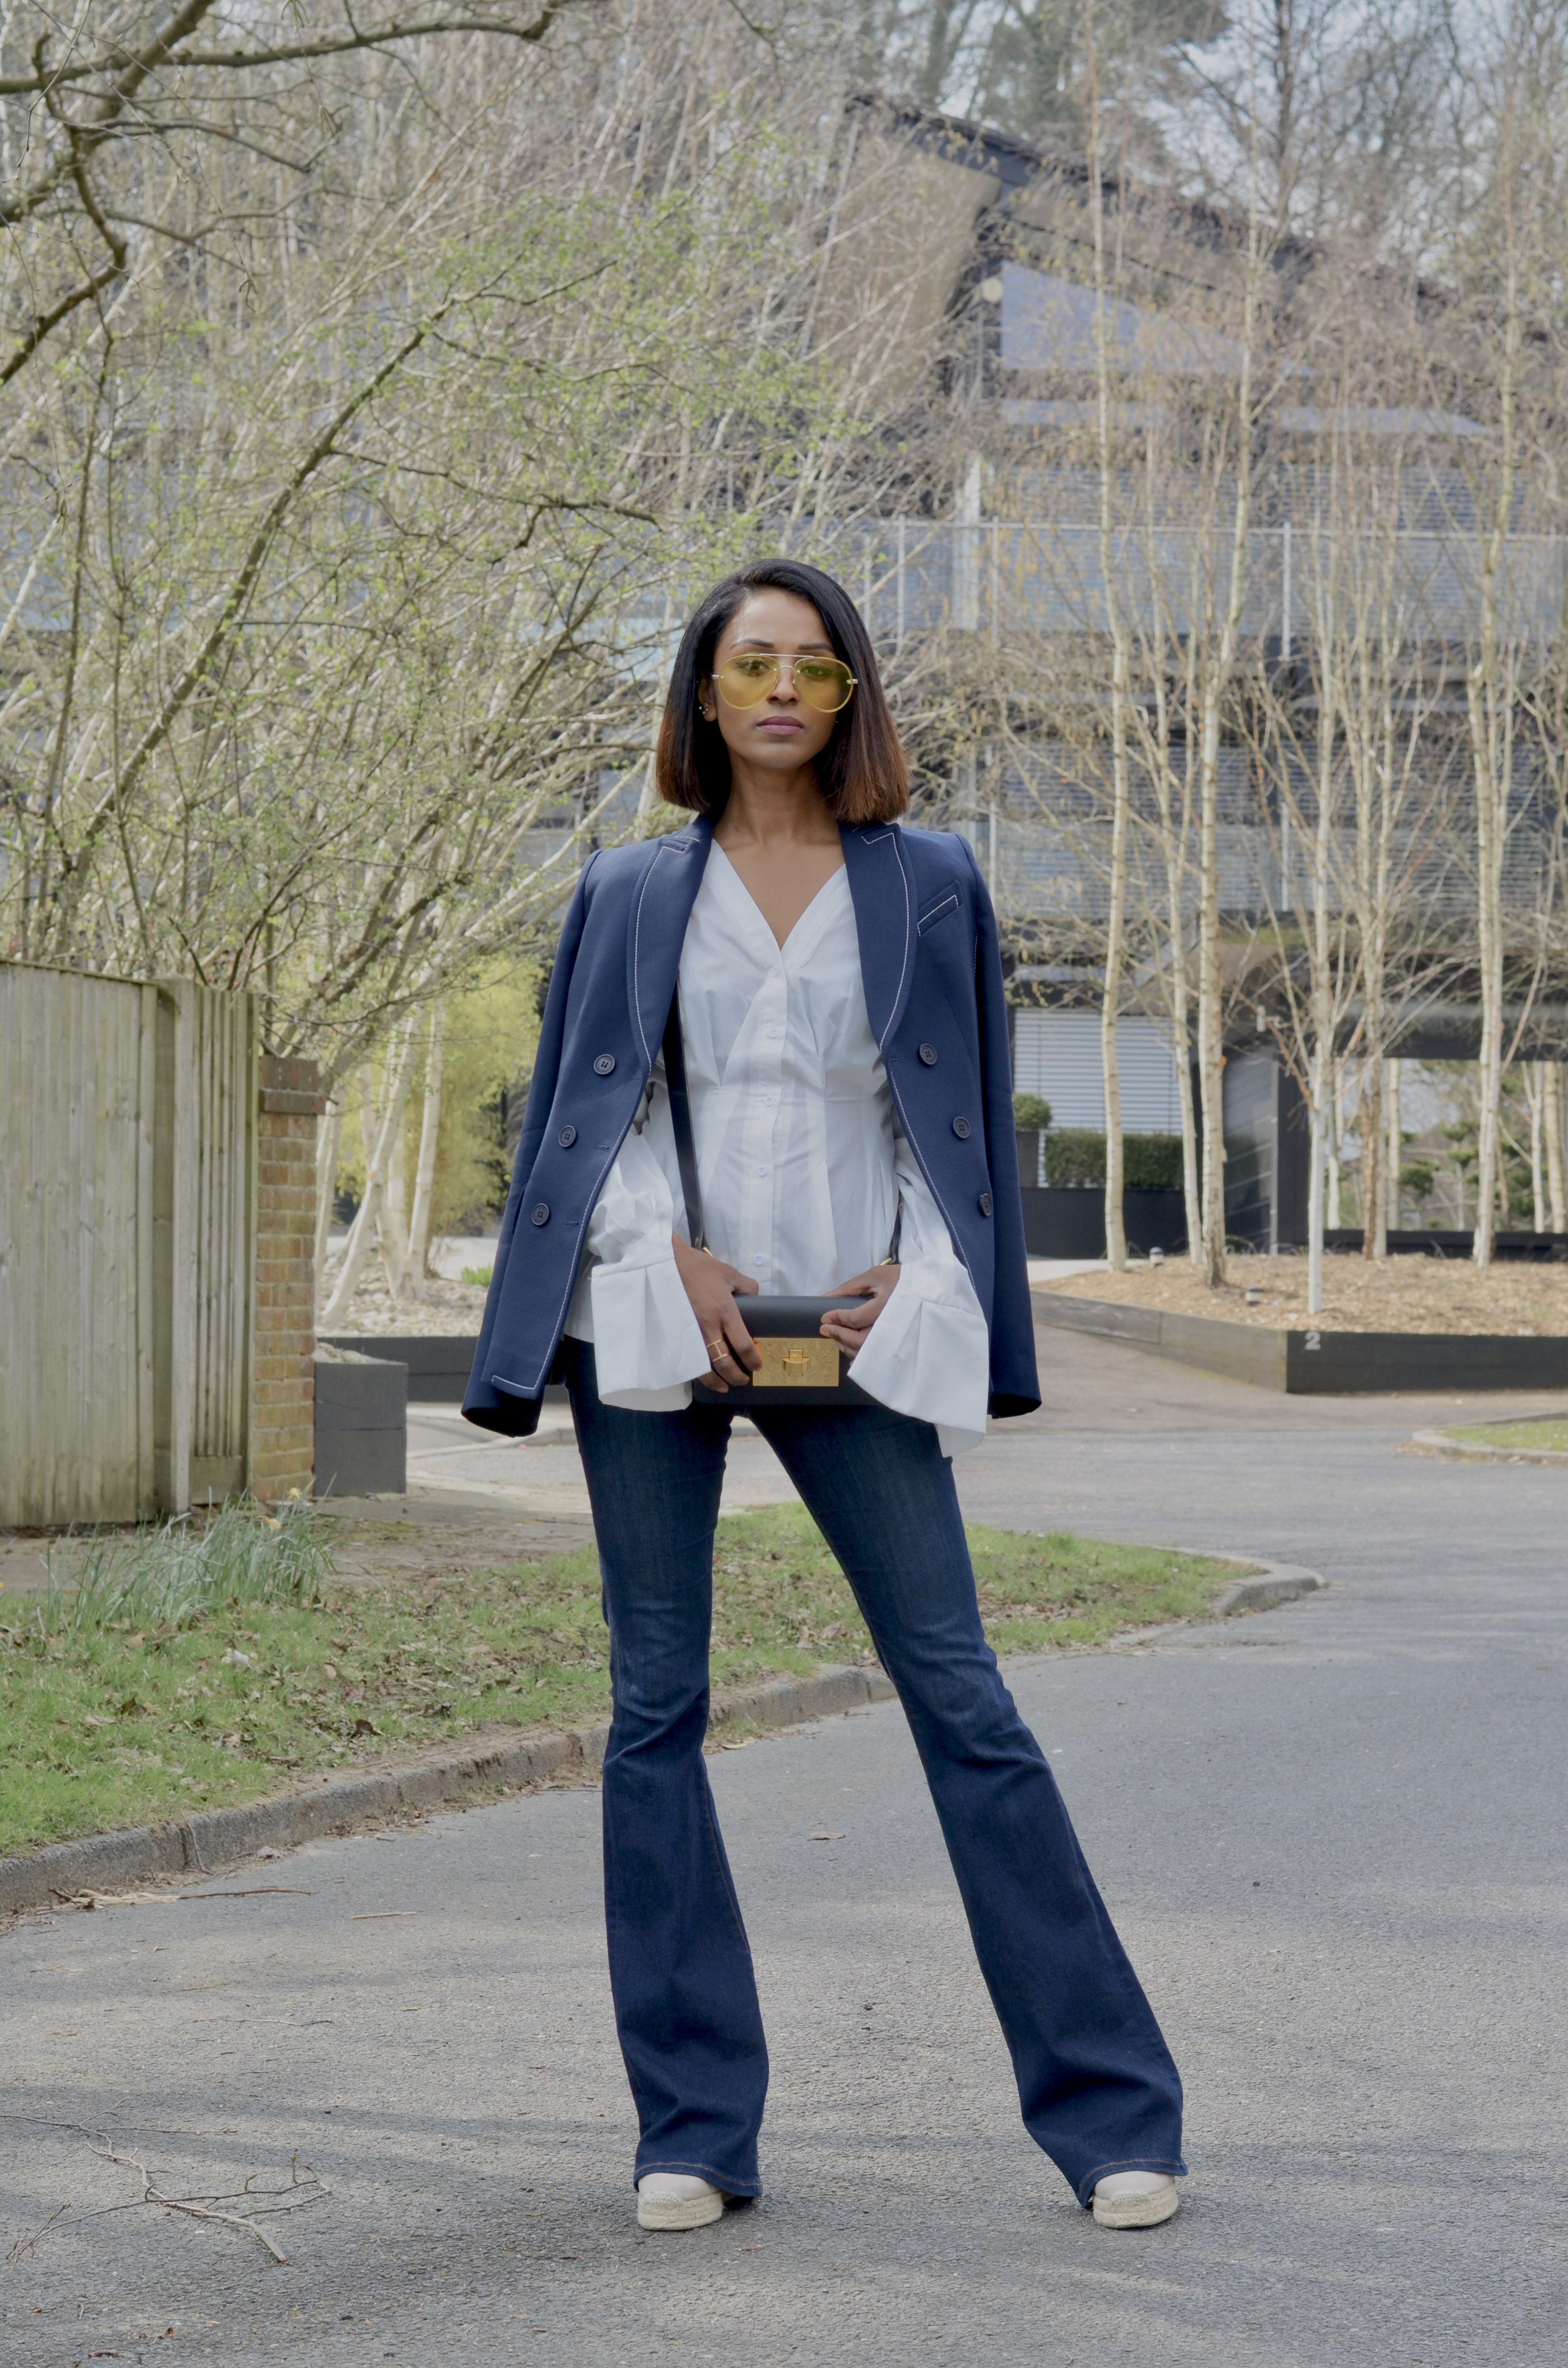 HOW TO STYLE A CONTRAST STITCH BLAZER